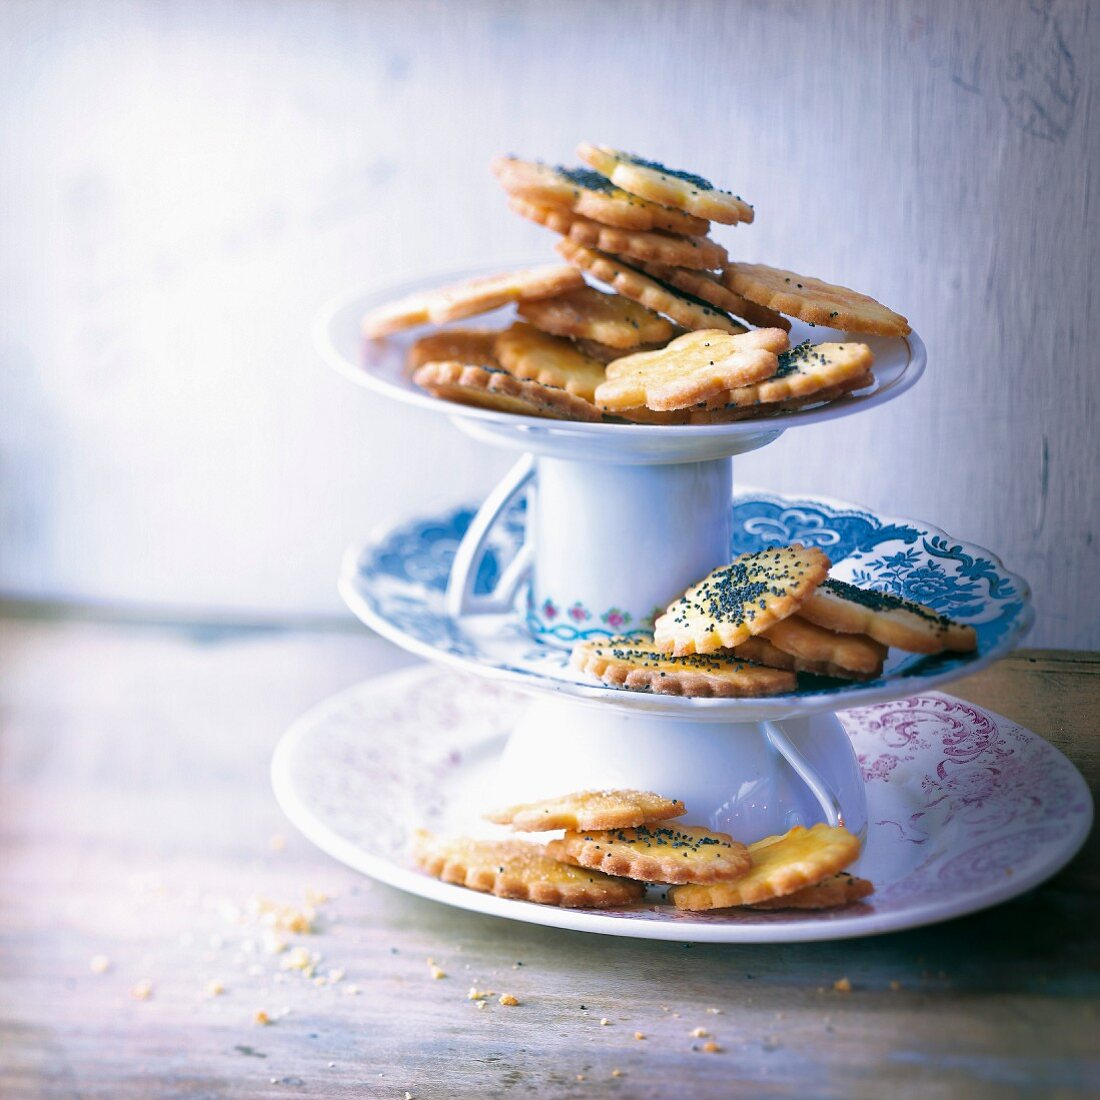 Lemon shortbread cookies and poppy seed shortbread cookies